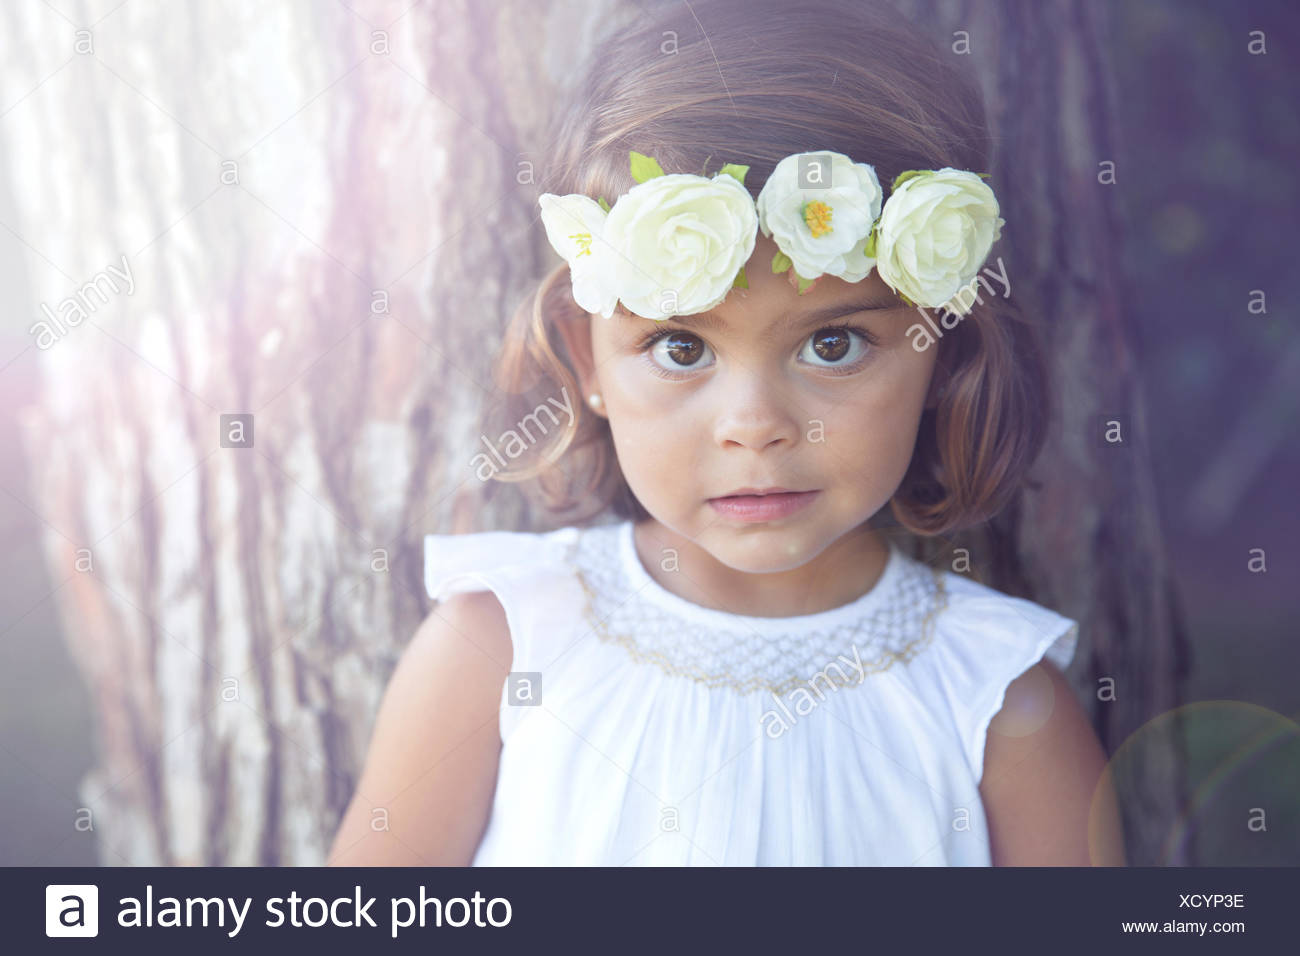 Portrait of a smiling girl wearing a flower headdress - Stock Image